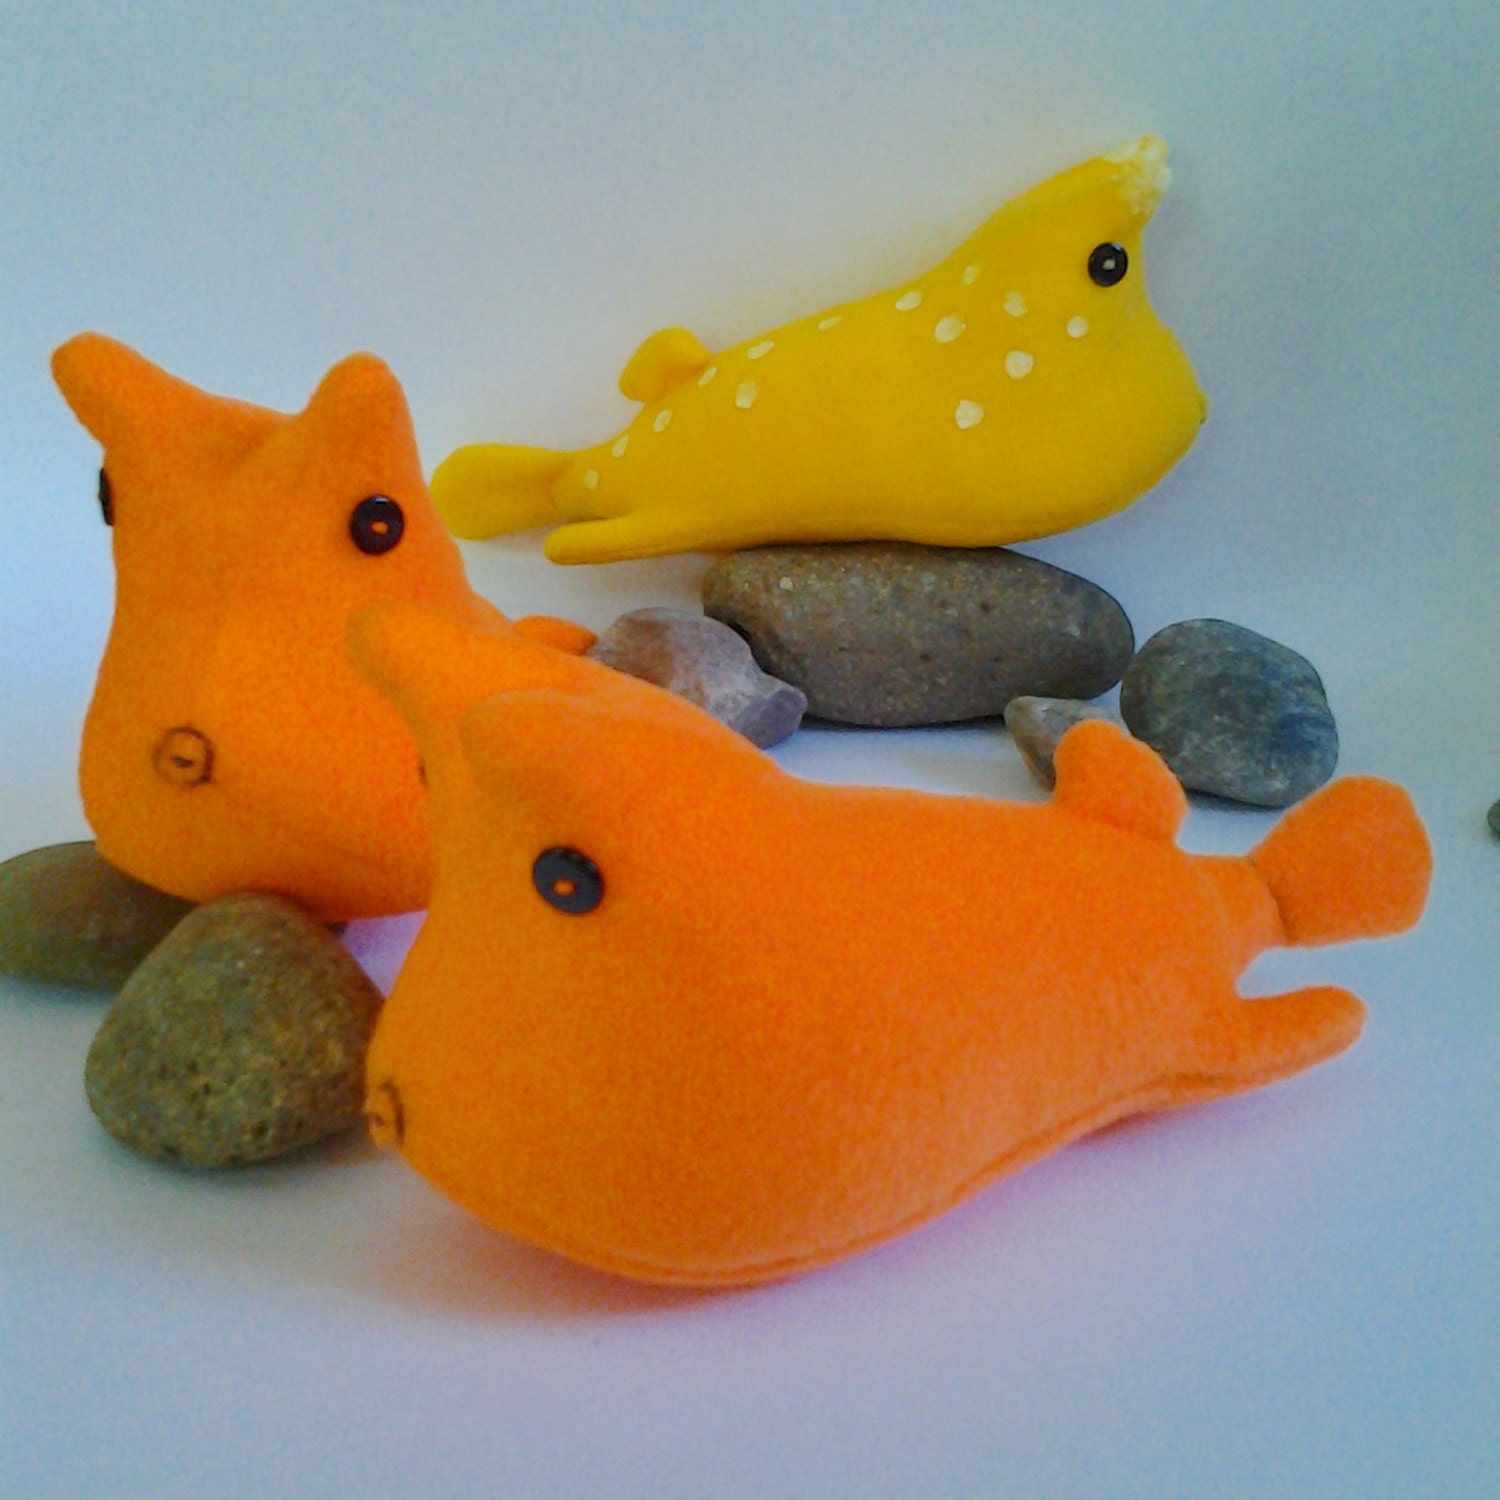 Cow fish sewing pattern easy sewing pattern soft toy pattern this is a digital file jeuxipadfo Image collections